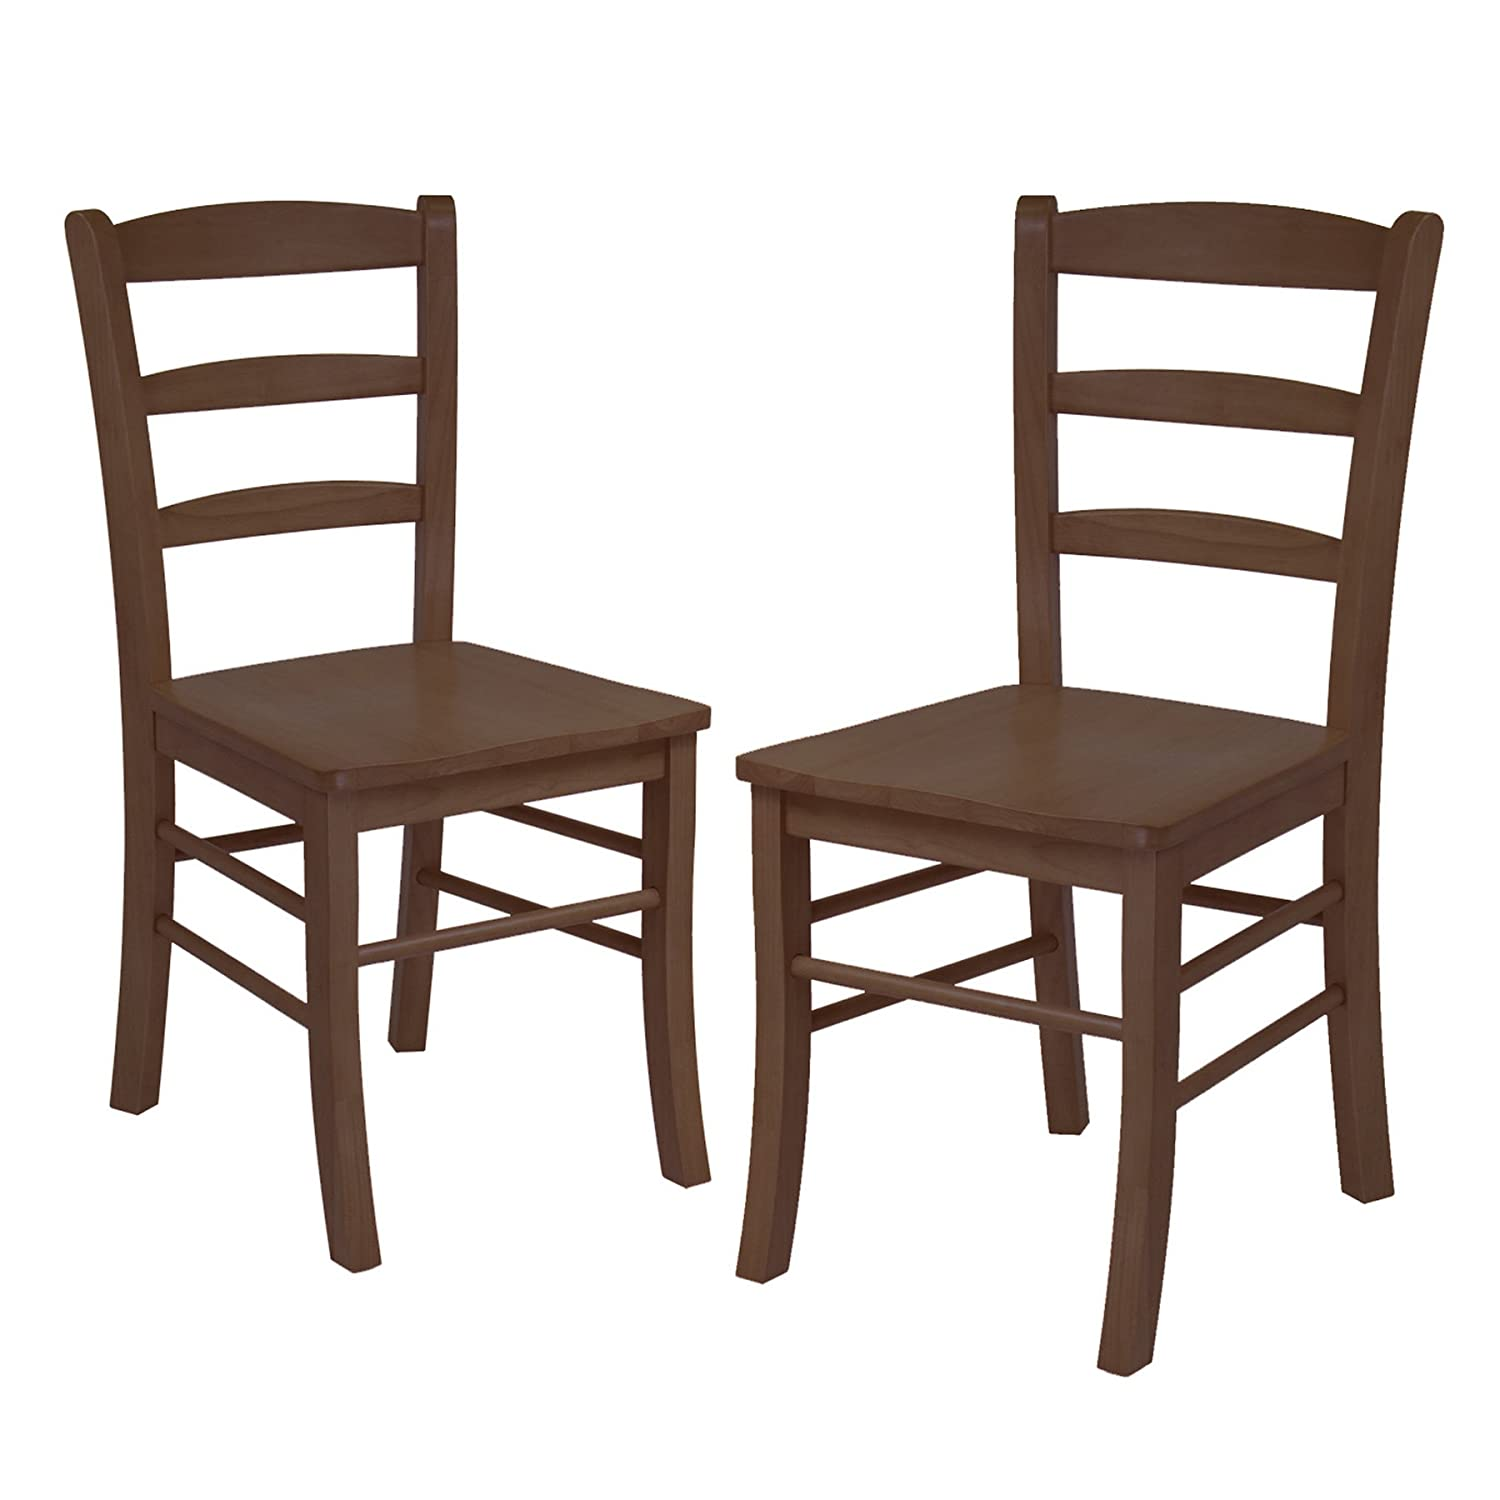 Amazon Winsome Wood Ladder Back Chair RTA Antique Walnut Set Of 2 Kitchen Dining